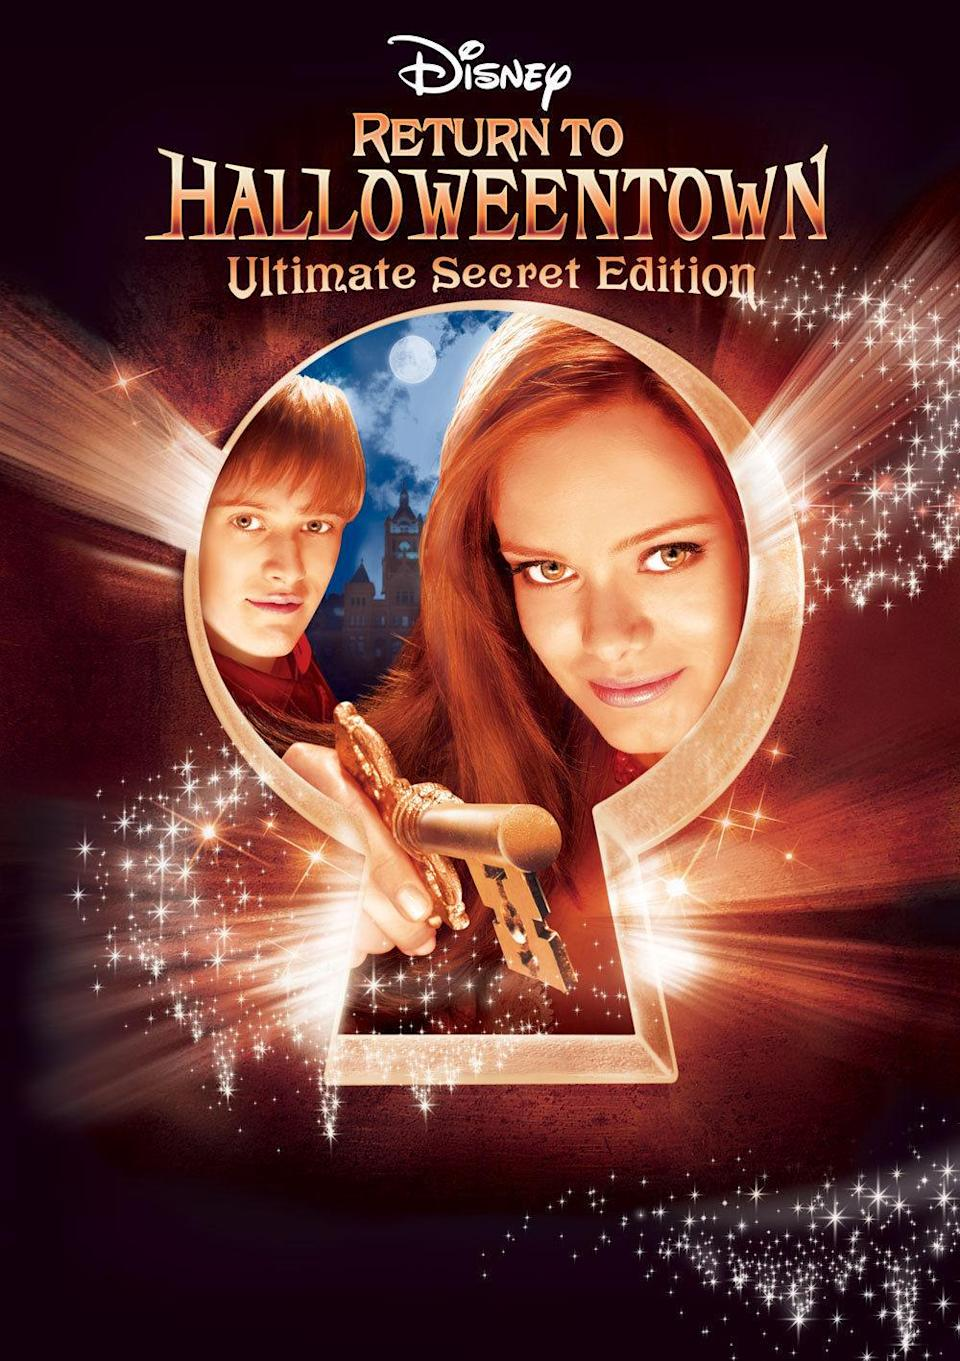 <p>Witchcraft is never a one-time deal, so it's back to Halloweentown for young Marnie (Sara Paxton, <i>The Innkeepers</i>). But this time there's a twist: She's going to college!<br><br><i>(Credit: Disney Channel)</i> </p>